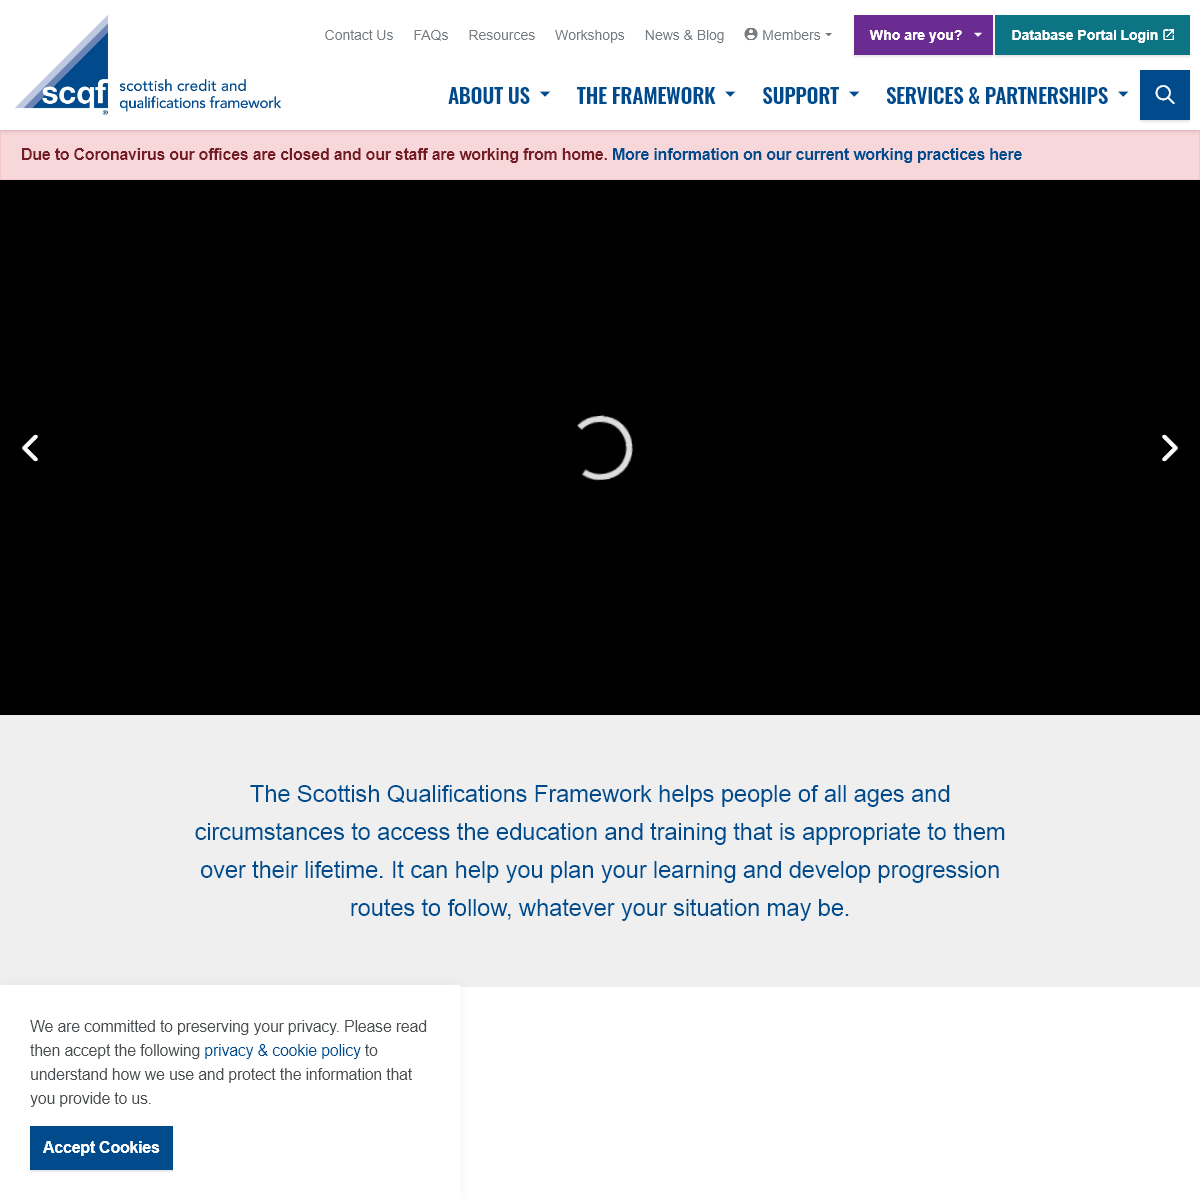 Home - Scottish Credit and Qualifications Framework